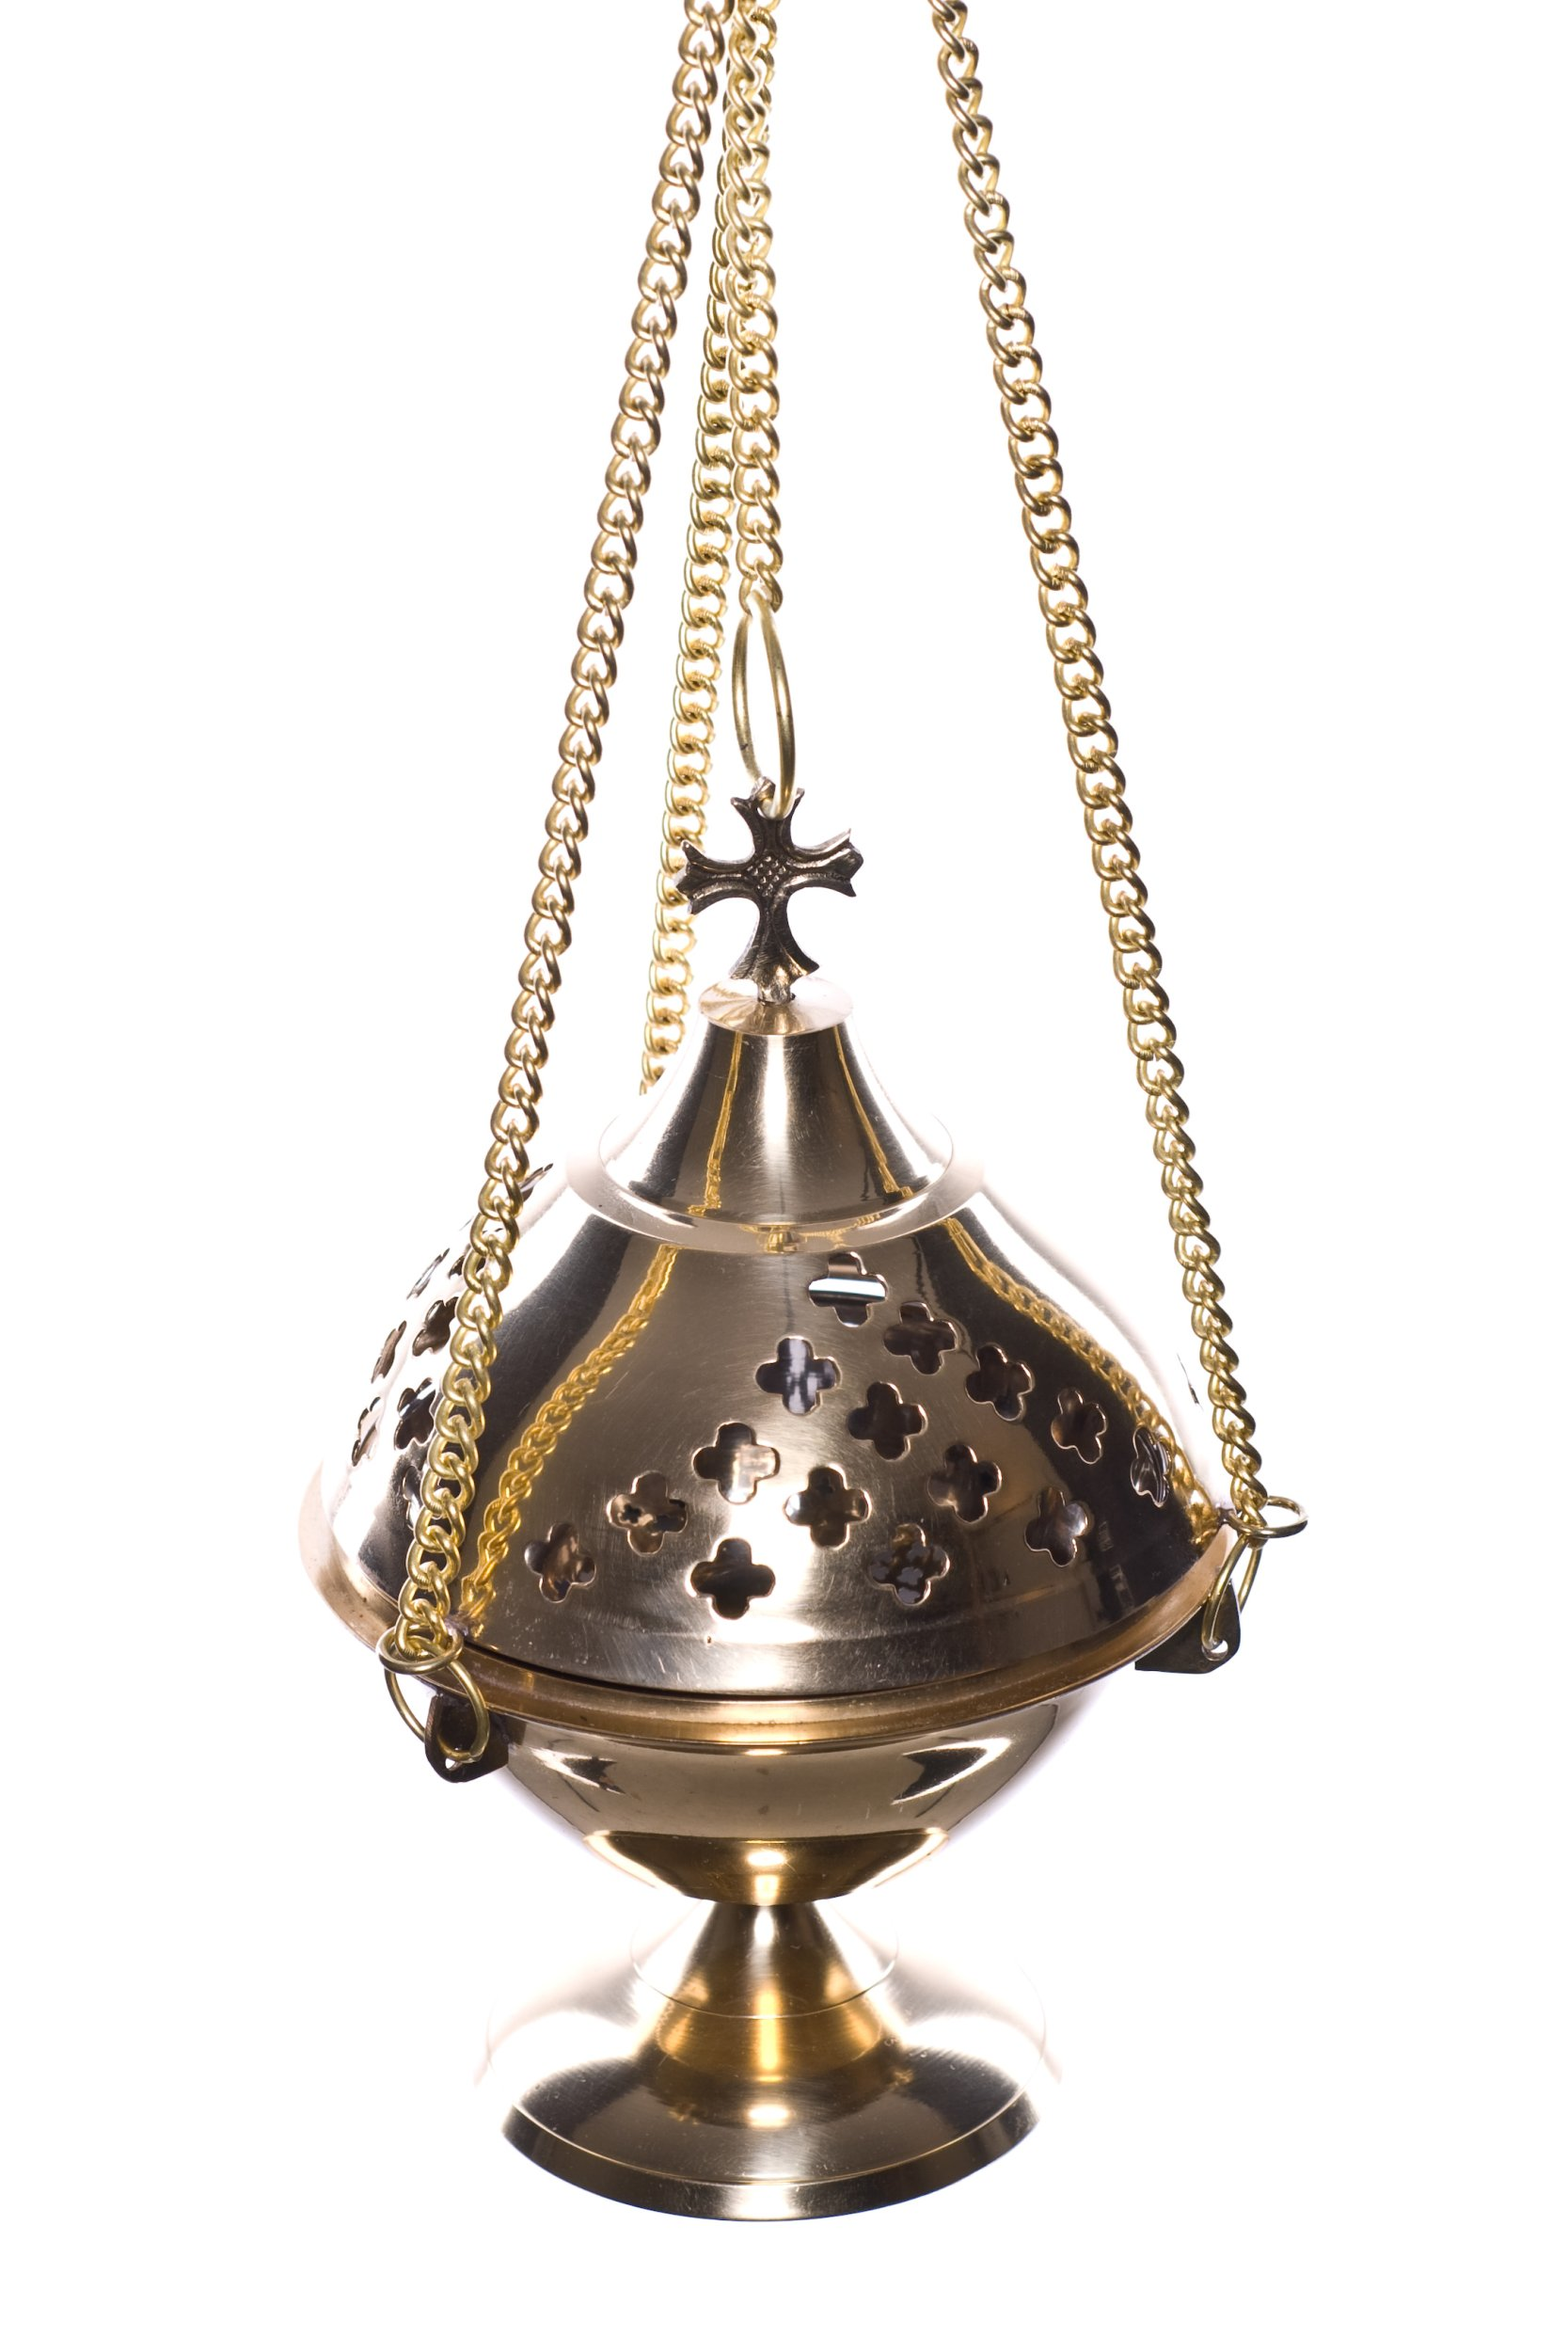 MDS Brass 3 Chain Incense Burner by mds